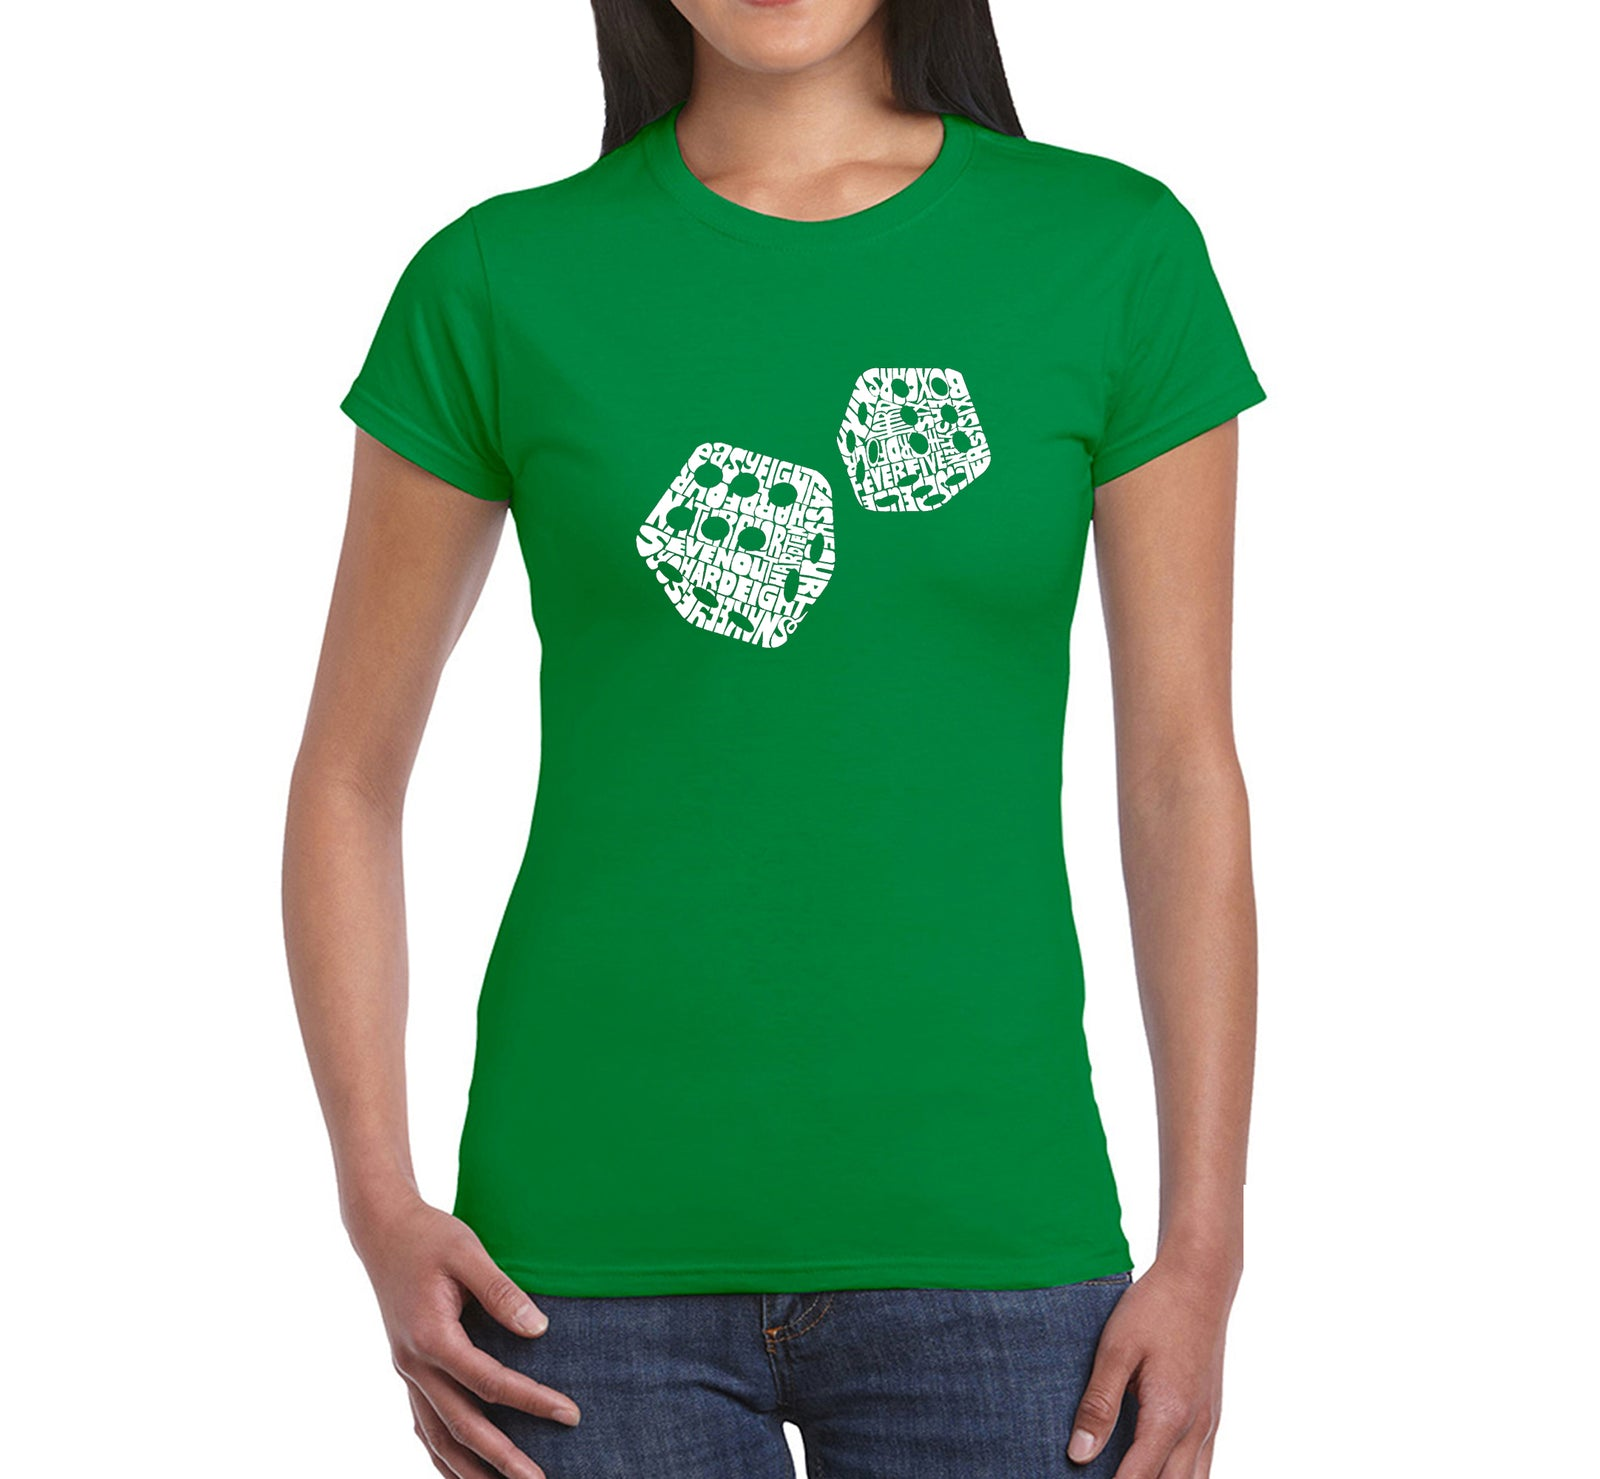 Women's T-Shirt - DIFFERENT ROLLS THROWN IN THE GAME OF CRAPS